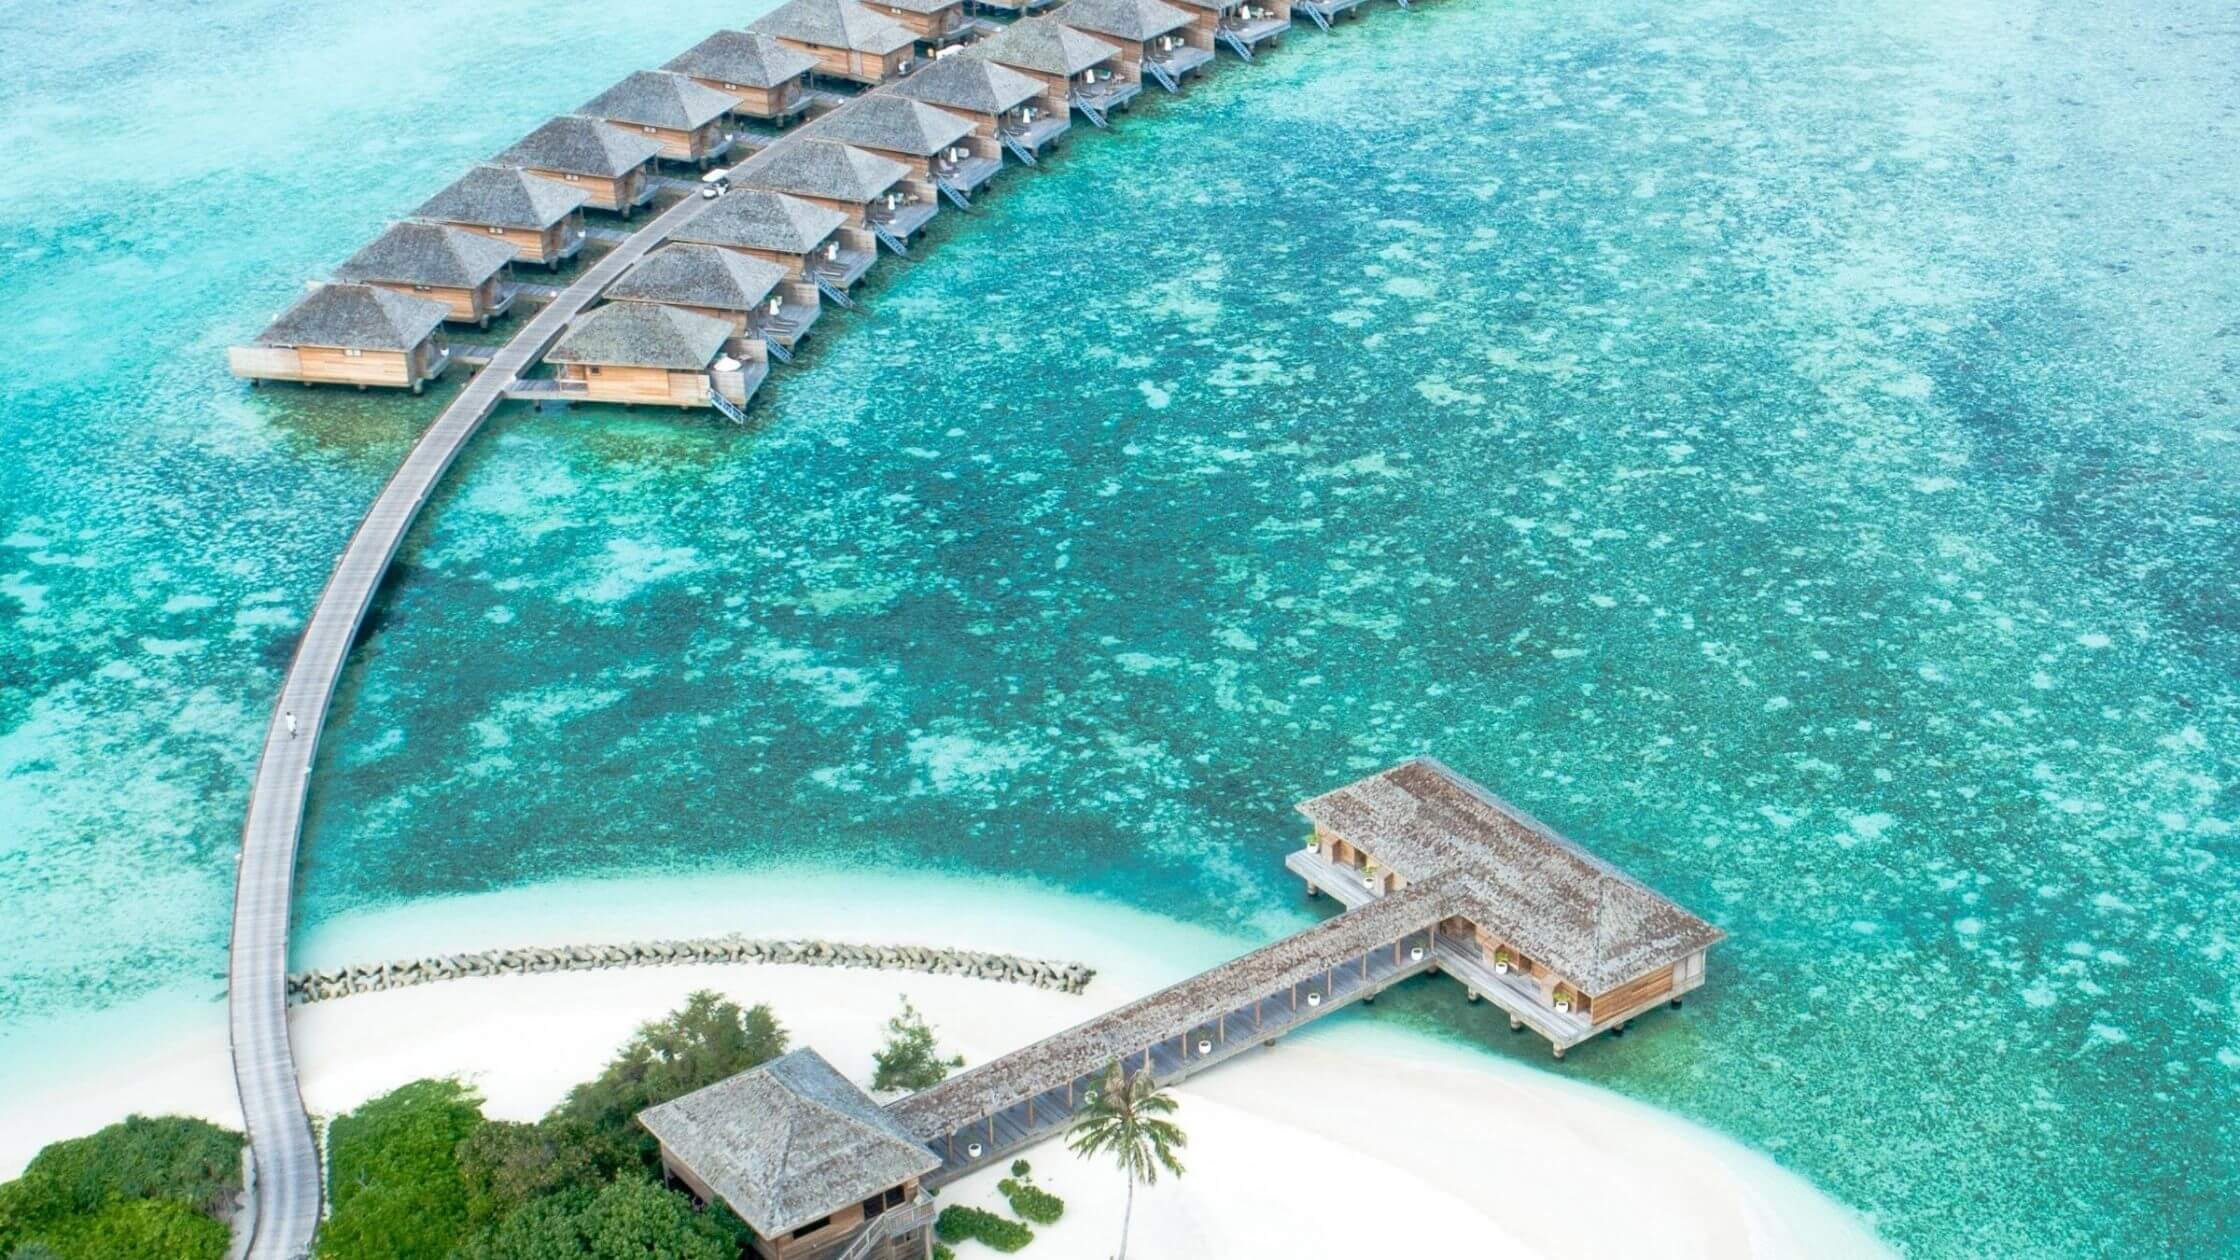 Maldives Vacation Package (All Inclusive Cost, Deals & Itinerary)